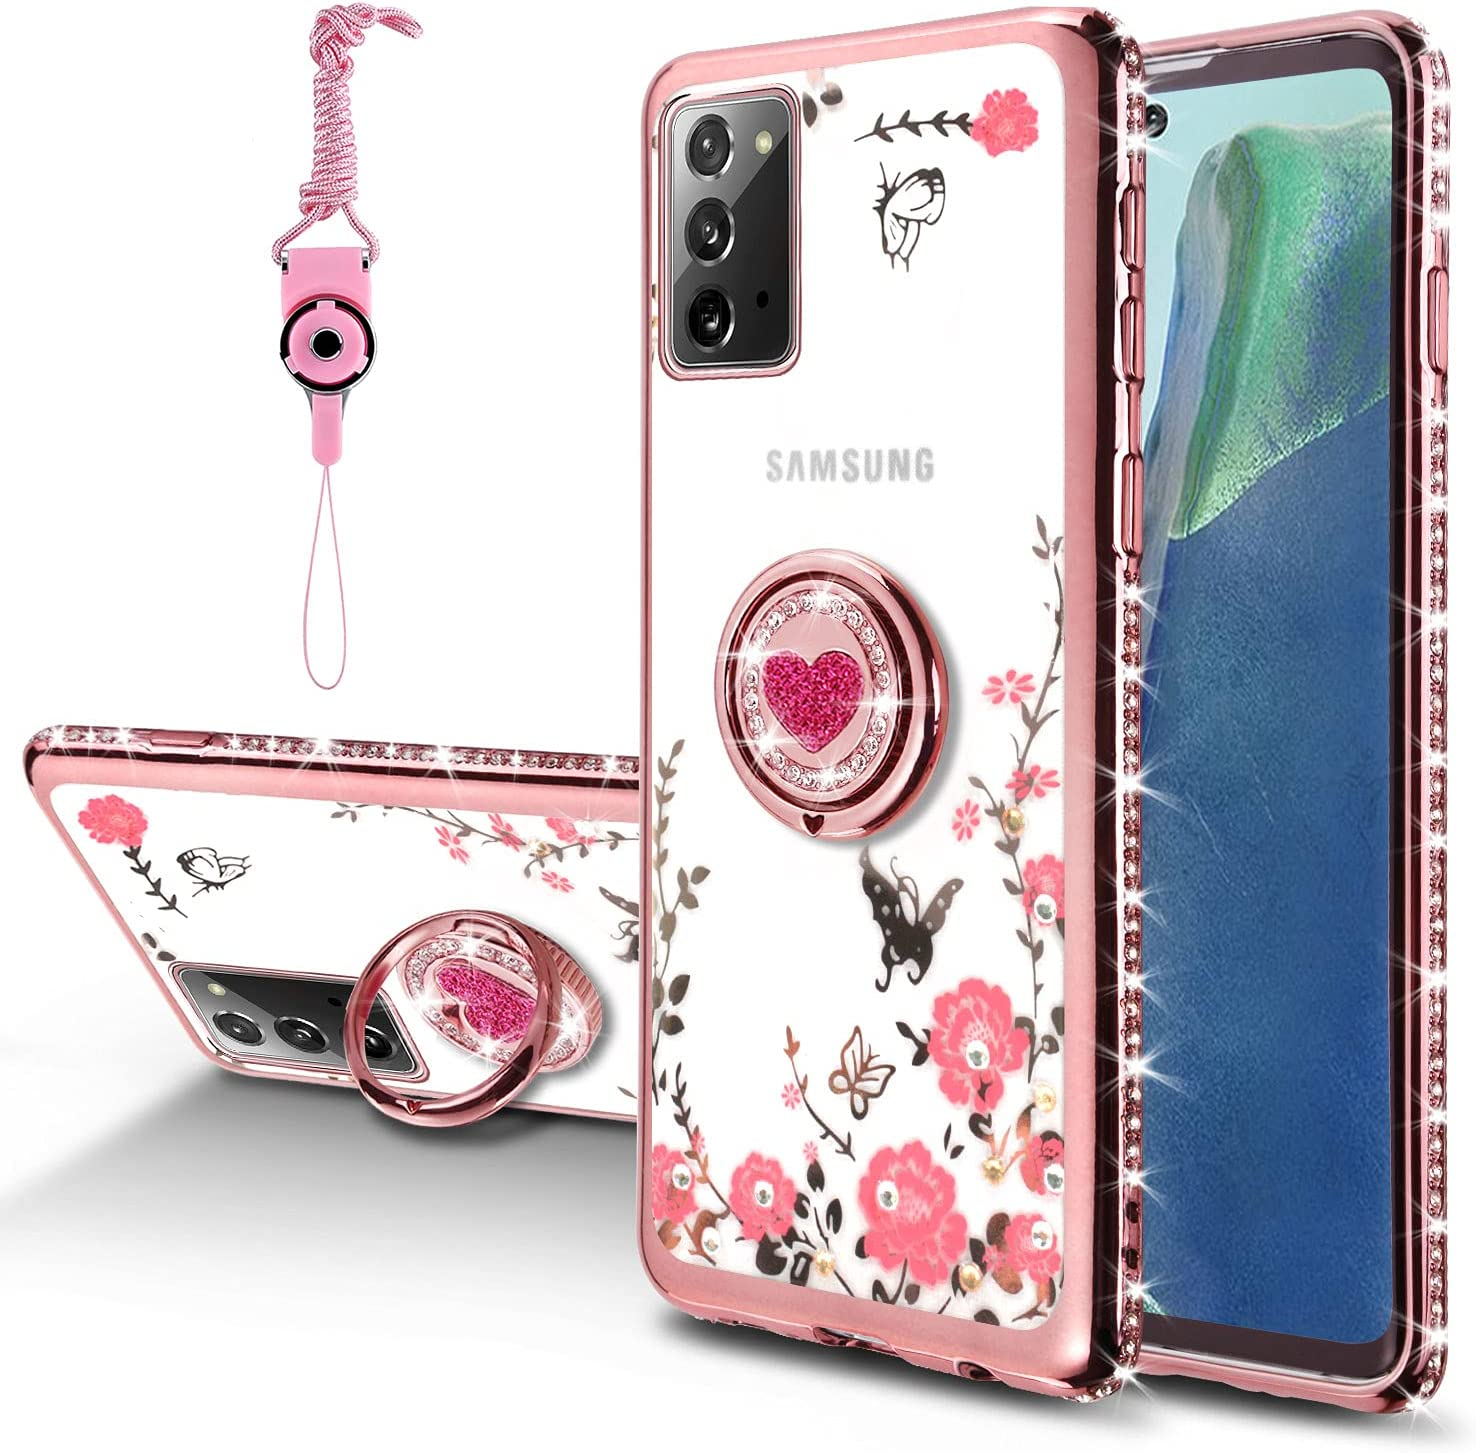 DHIMI for Samsung Galaxy Note 20 Case, Glitter Sparkly Diamond Floral Butterfly Ultra-Slim TPU with Metal Ring Stand Bumper Silicon TPU Protective Phone Case for Galaxy Note 20 (Rose Gold)